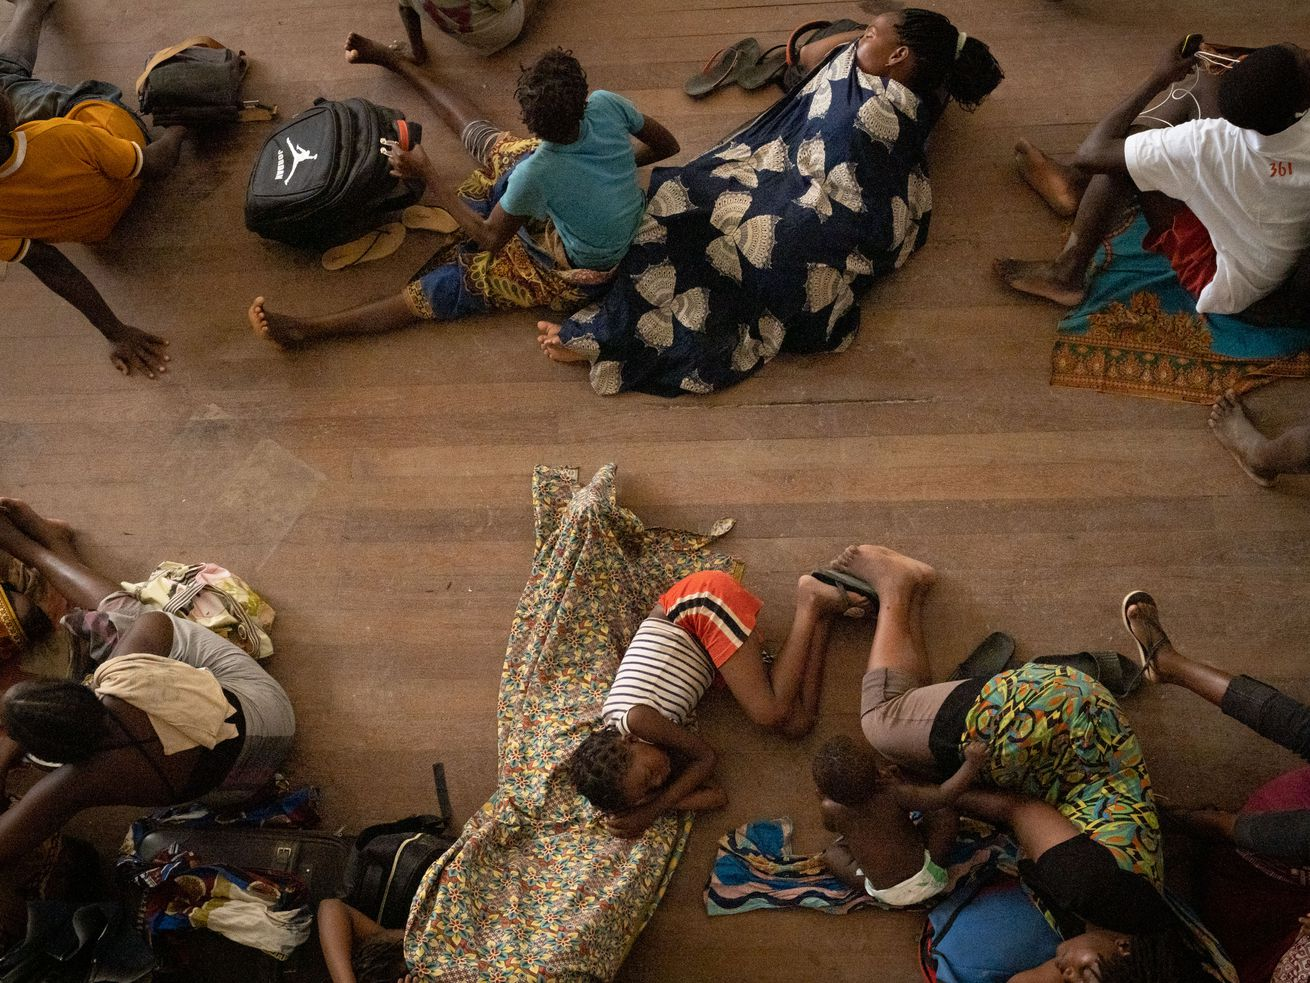 People from the isolated district of Buzi take shelter in the Samora M. Machel secondary school used as an evacuation center in Beira, Mozambique, on March 21, 2019, following the devastation caused by Cyclone Idai.